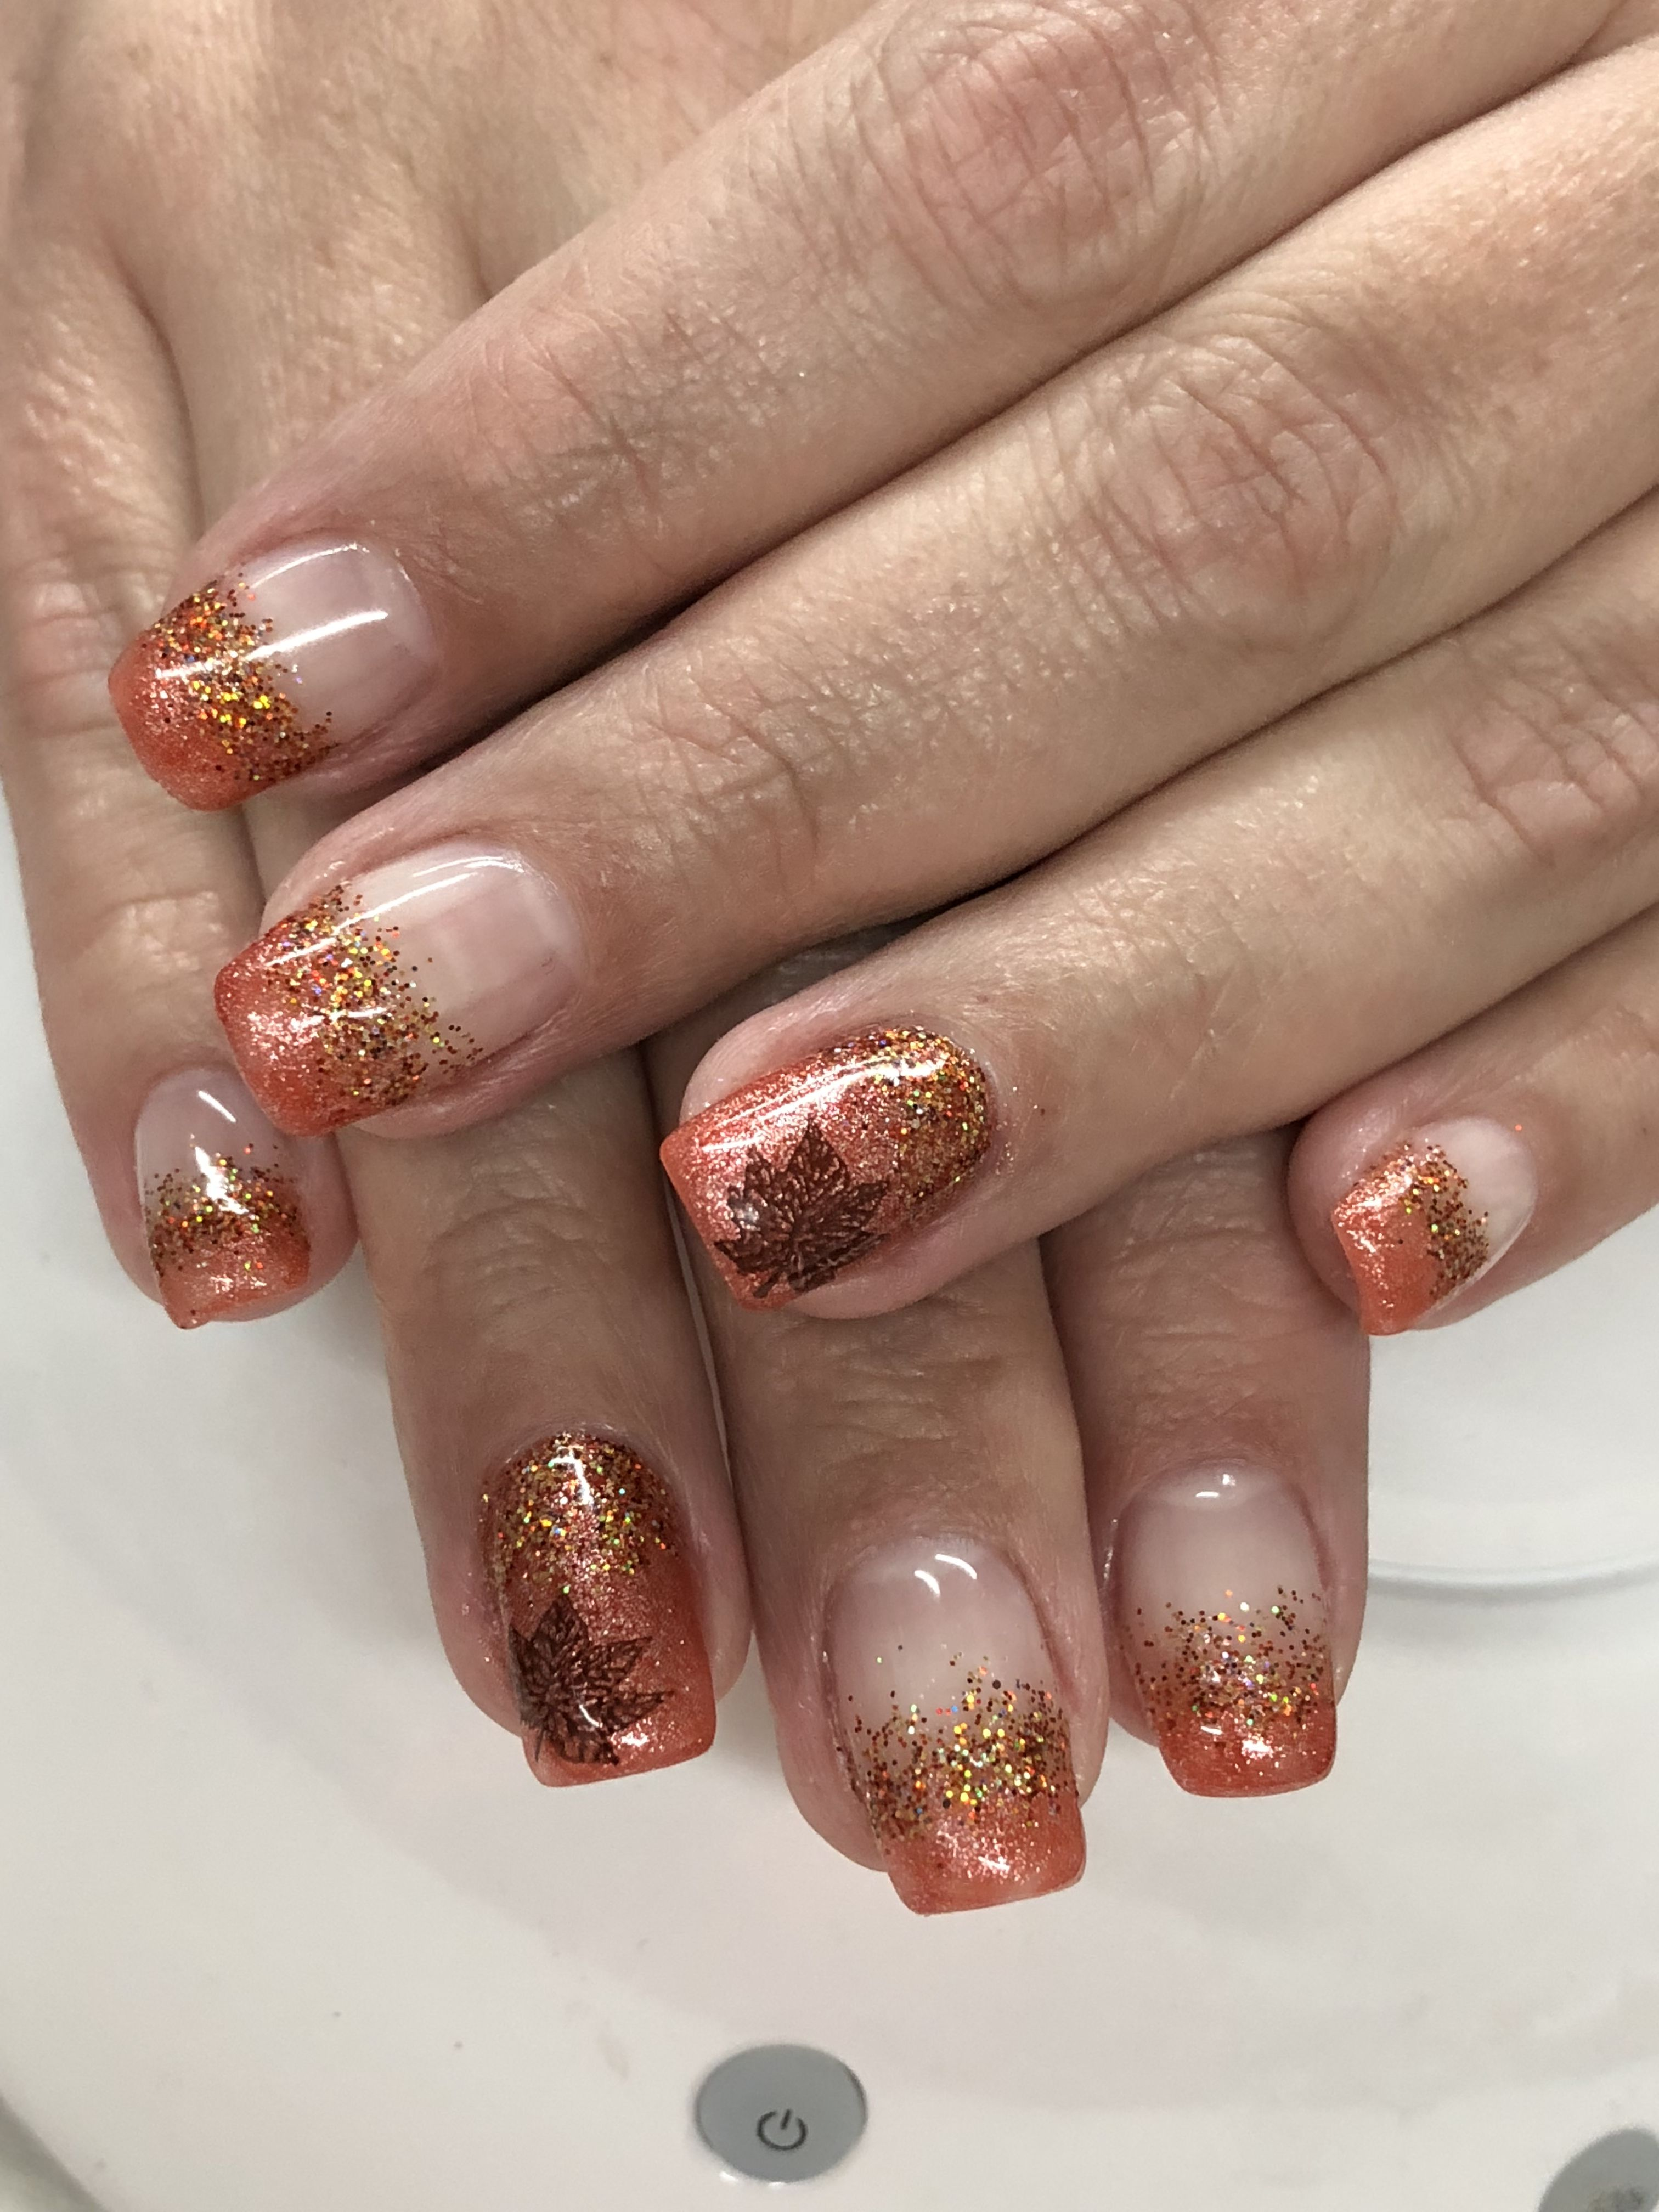 Shimmer Orange French Fall Ombre Glitter Gel Nails Glitter Gel Nails Ombre Nails Glitter Fall Gel Nails